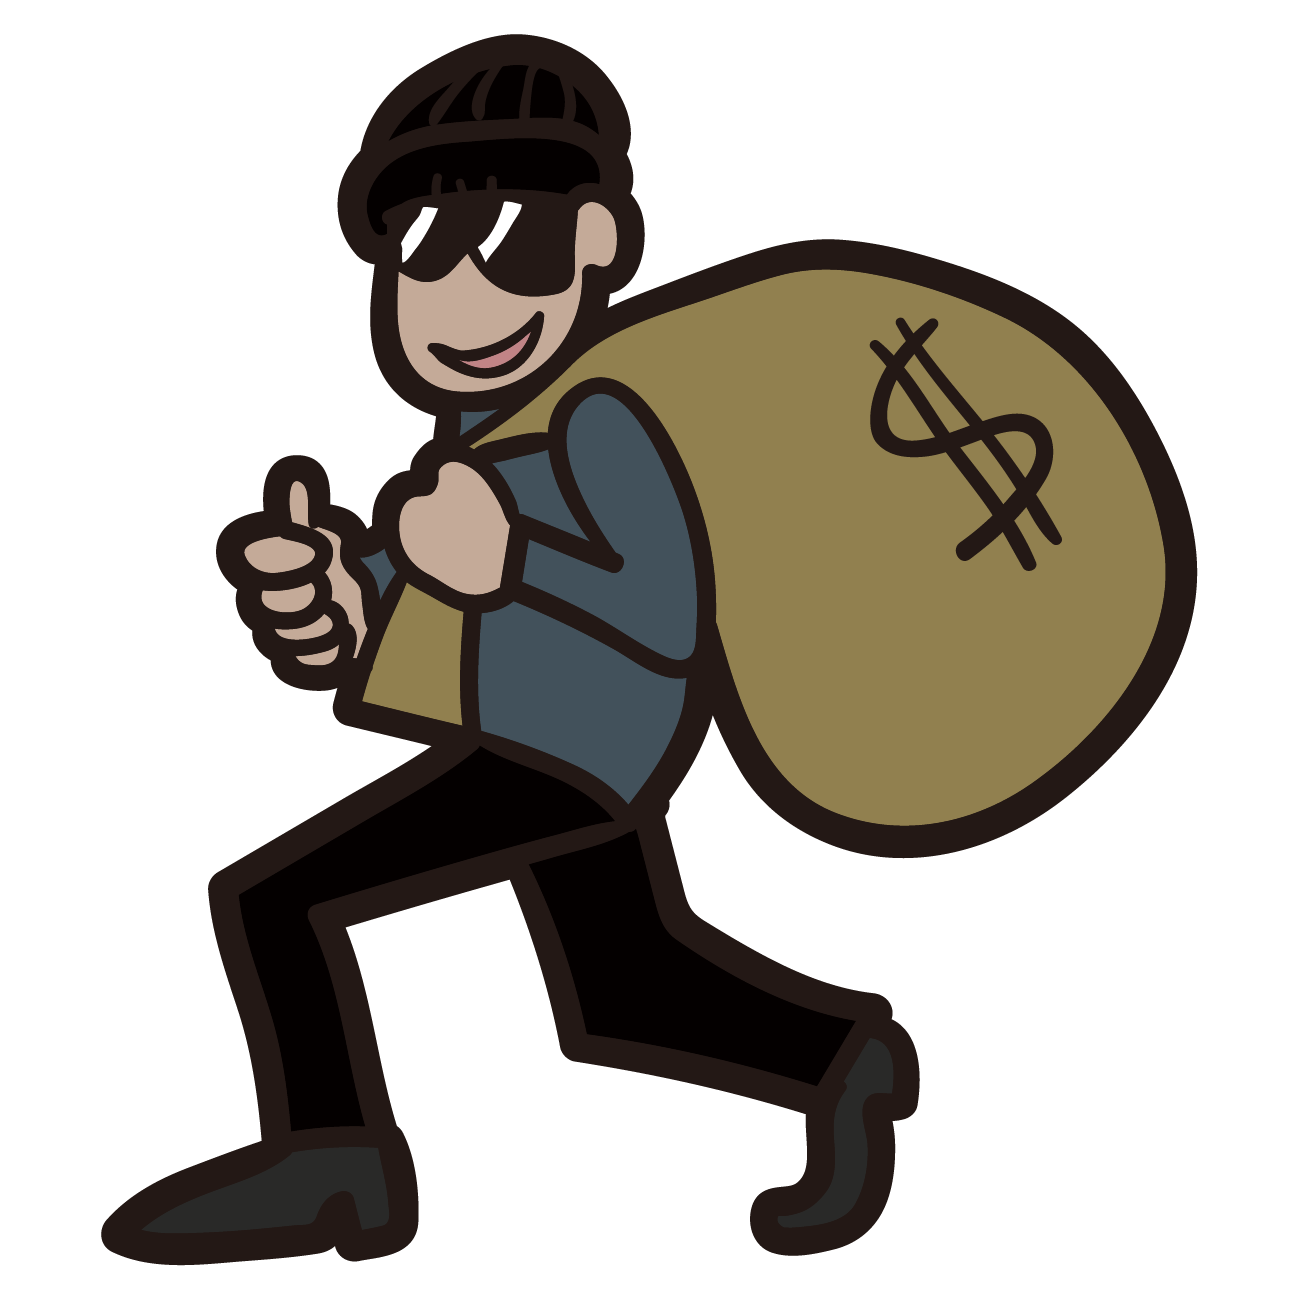 Cartoon robber clipart png royalty free download Clip art - thief 1300*1300 transprent Png Free Download - Cartoon ... png royalty free download